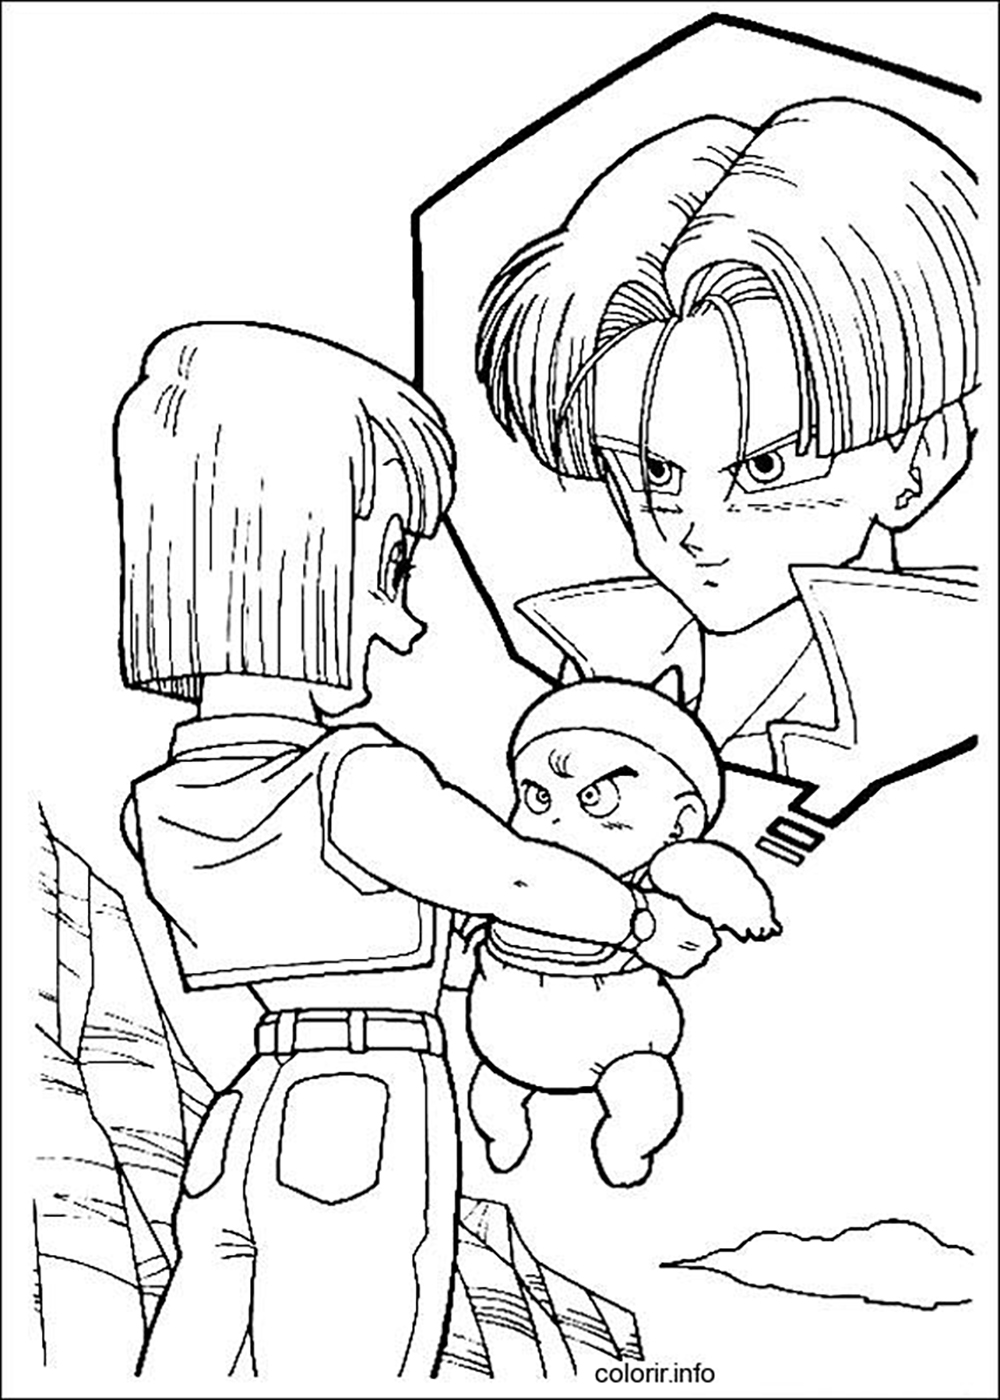 Facile dragon ball bebe trunks et trunks du futur avec - Dessin facile de dragon ...